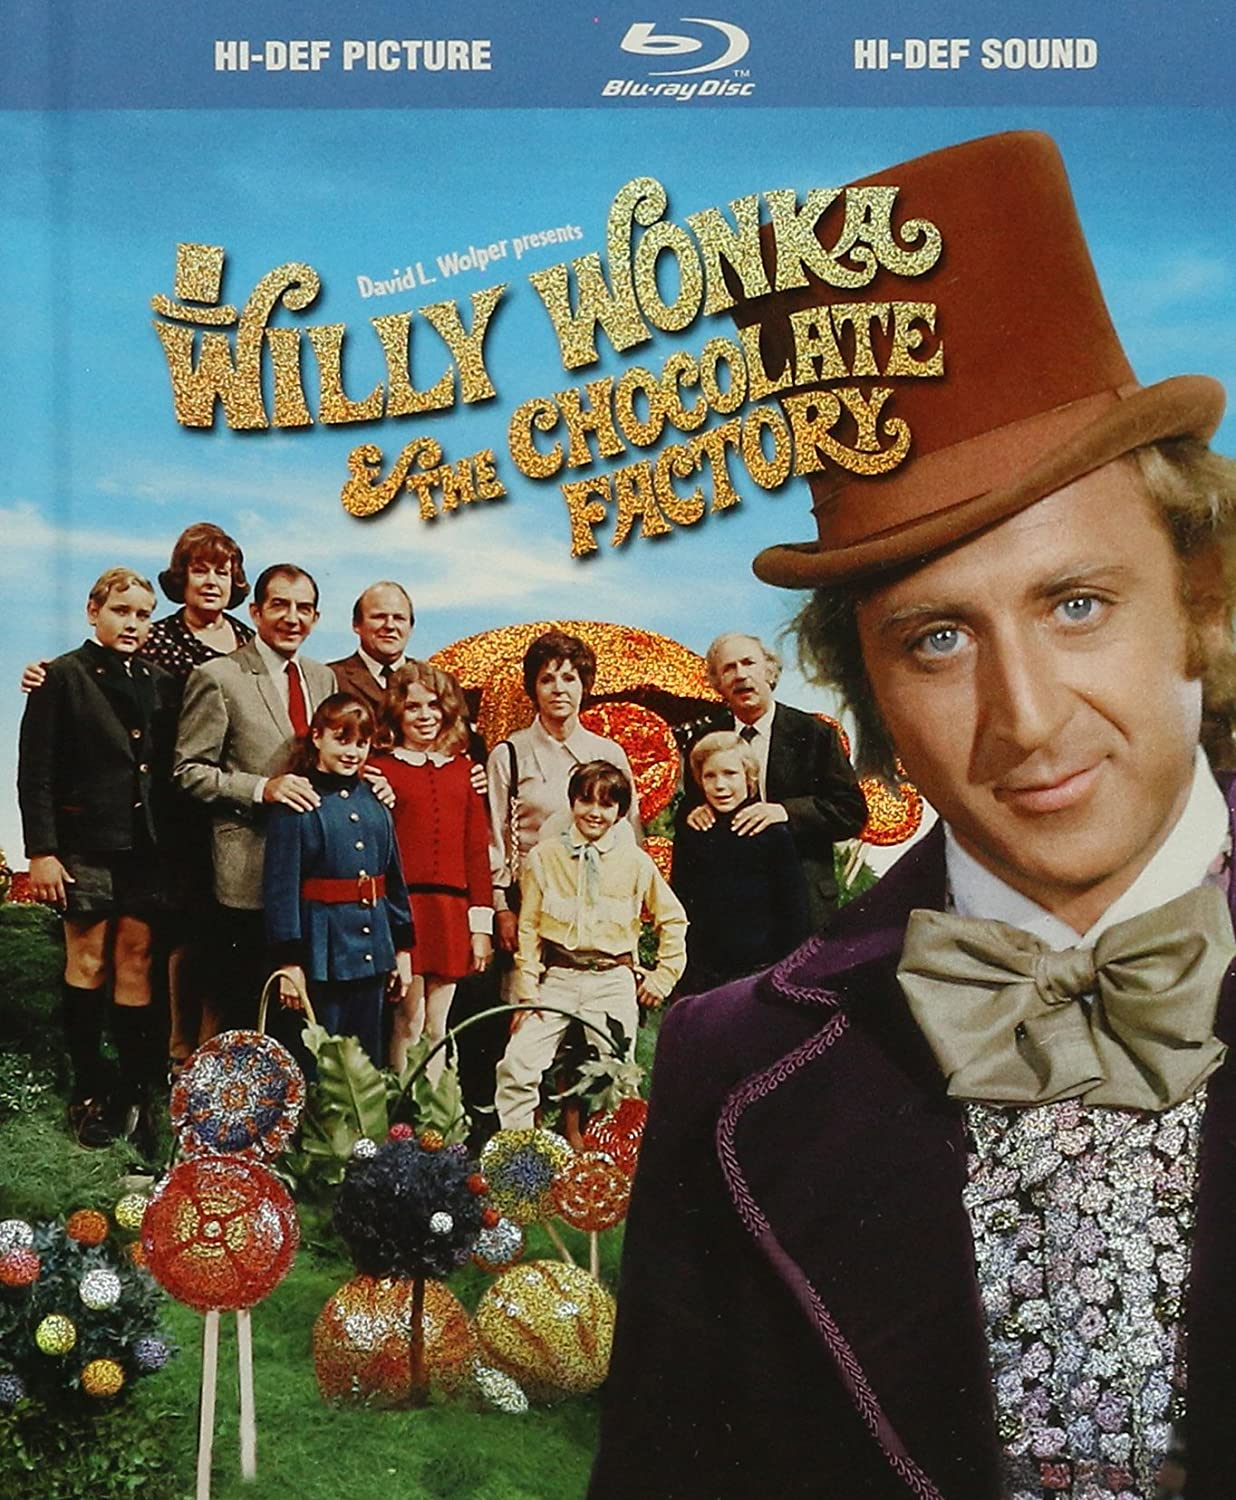 Amazon.com: Willy Wonka & the Chocolate Factory (Blu-ray Book ...